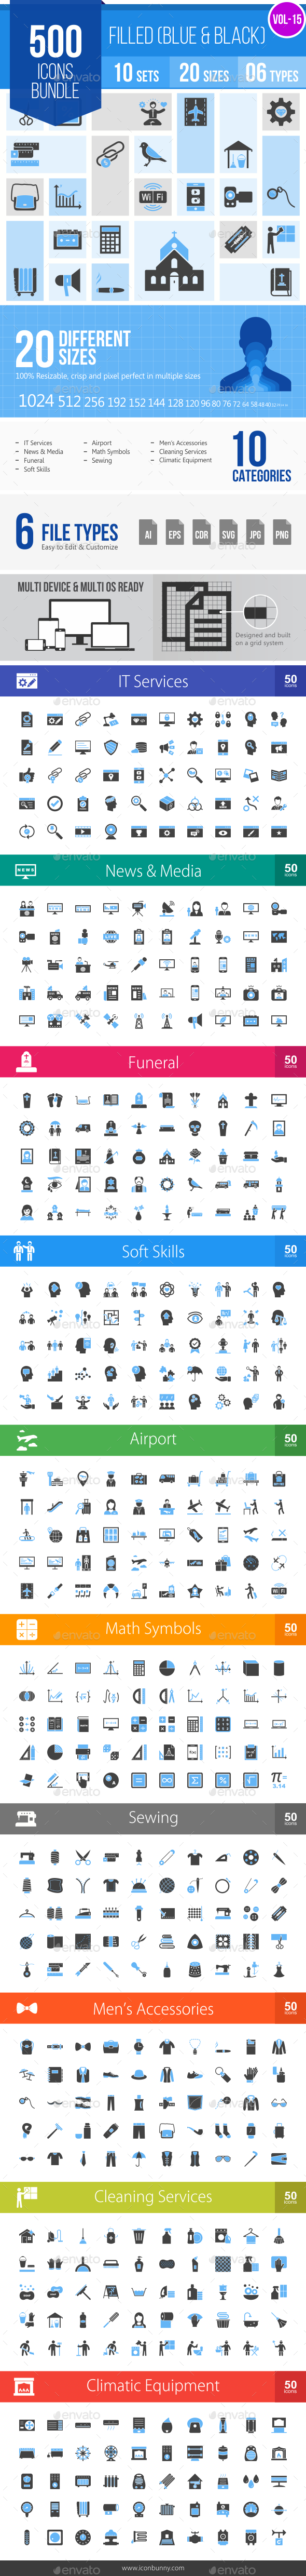 500 Vector Blue & Black Filled Icons Bundle (Vol-15) - Icons